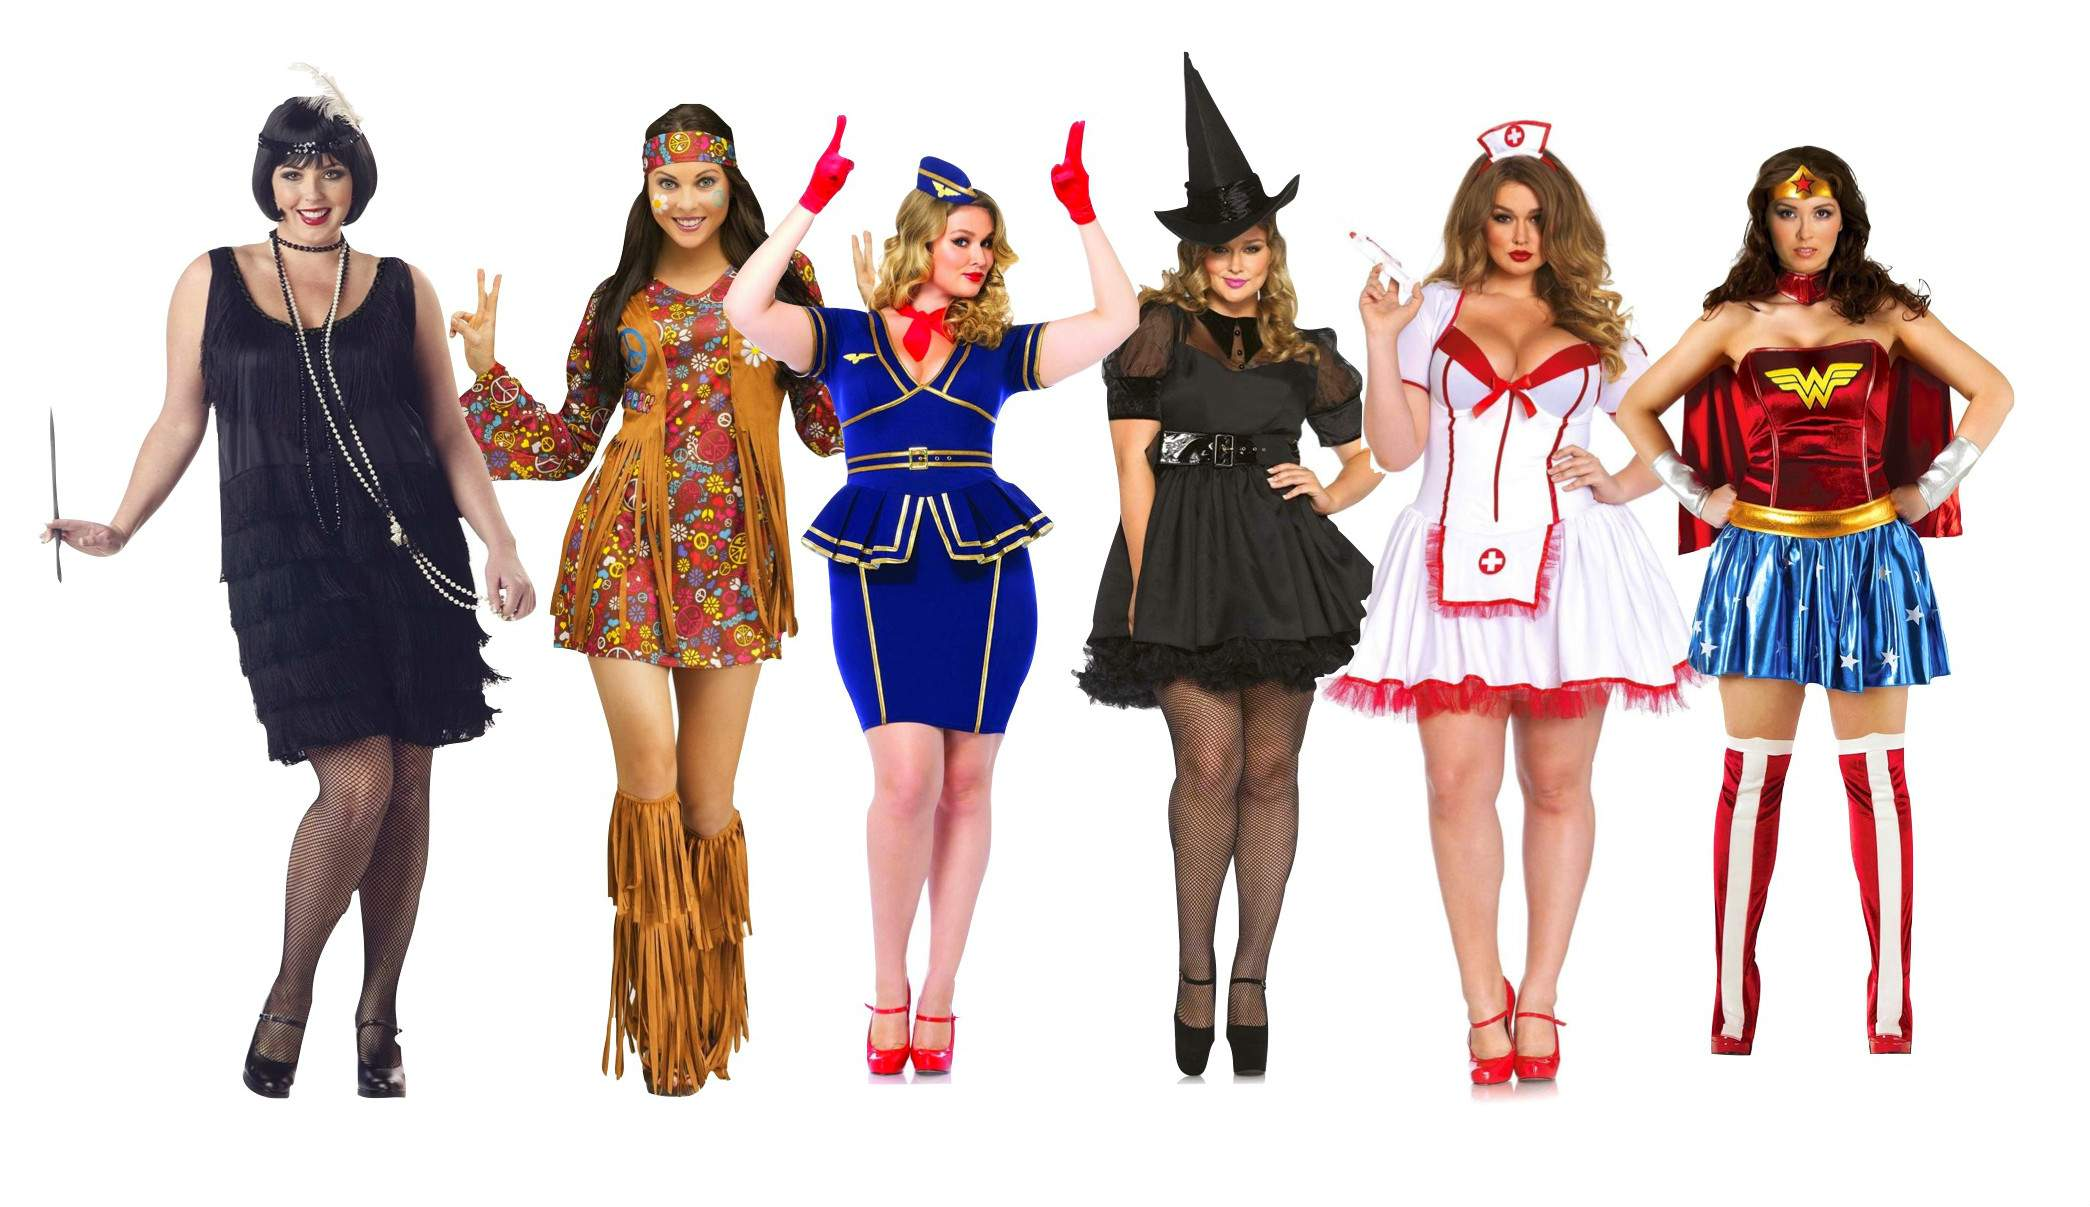 get the beautiful halloween plus size costumes for a pleasing look